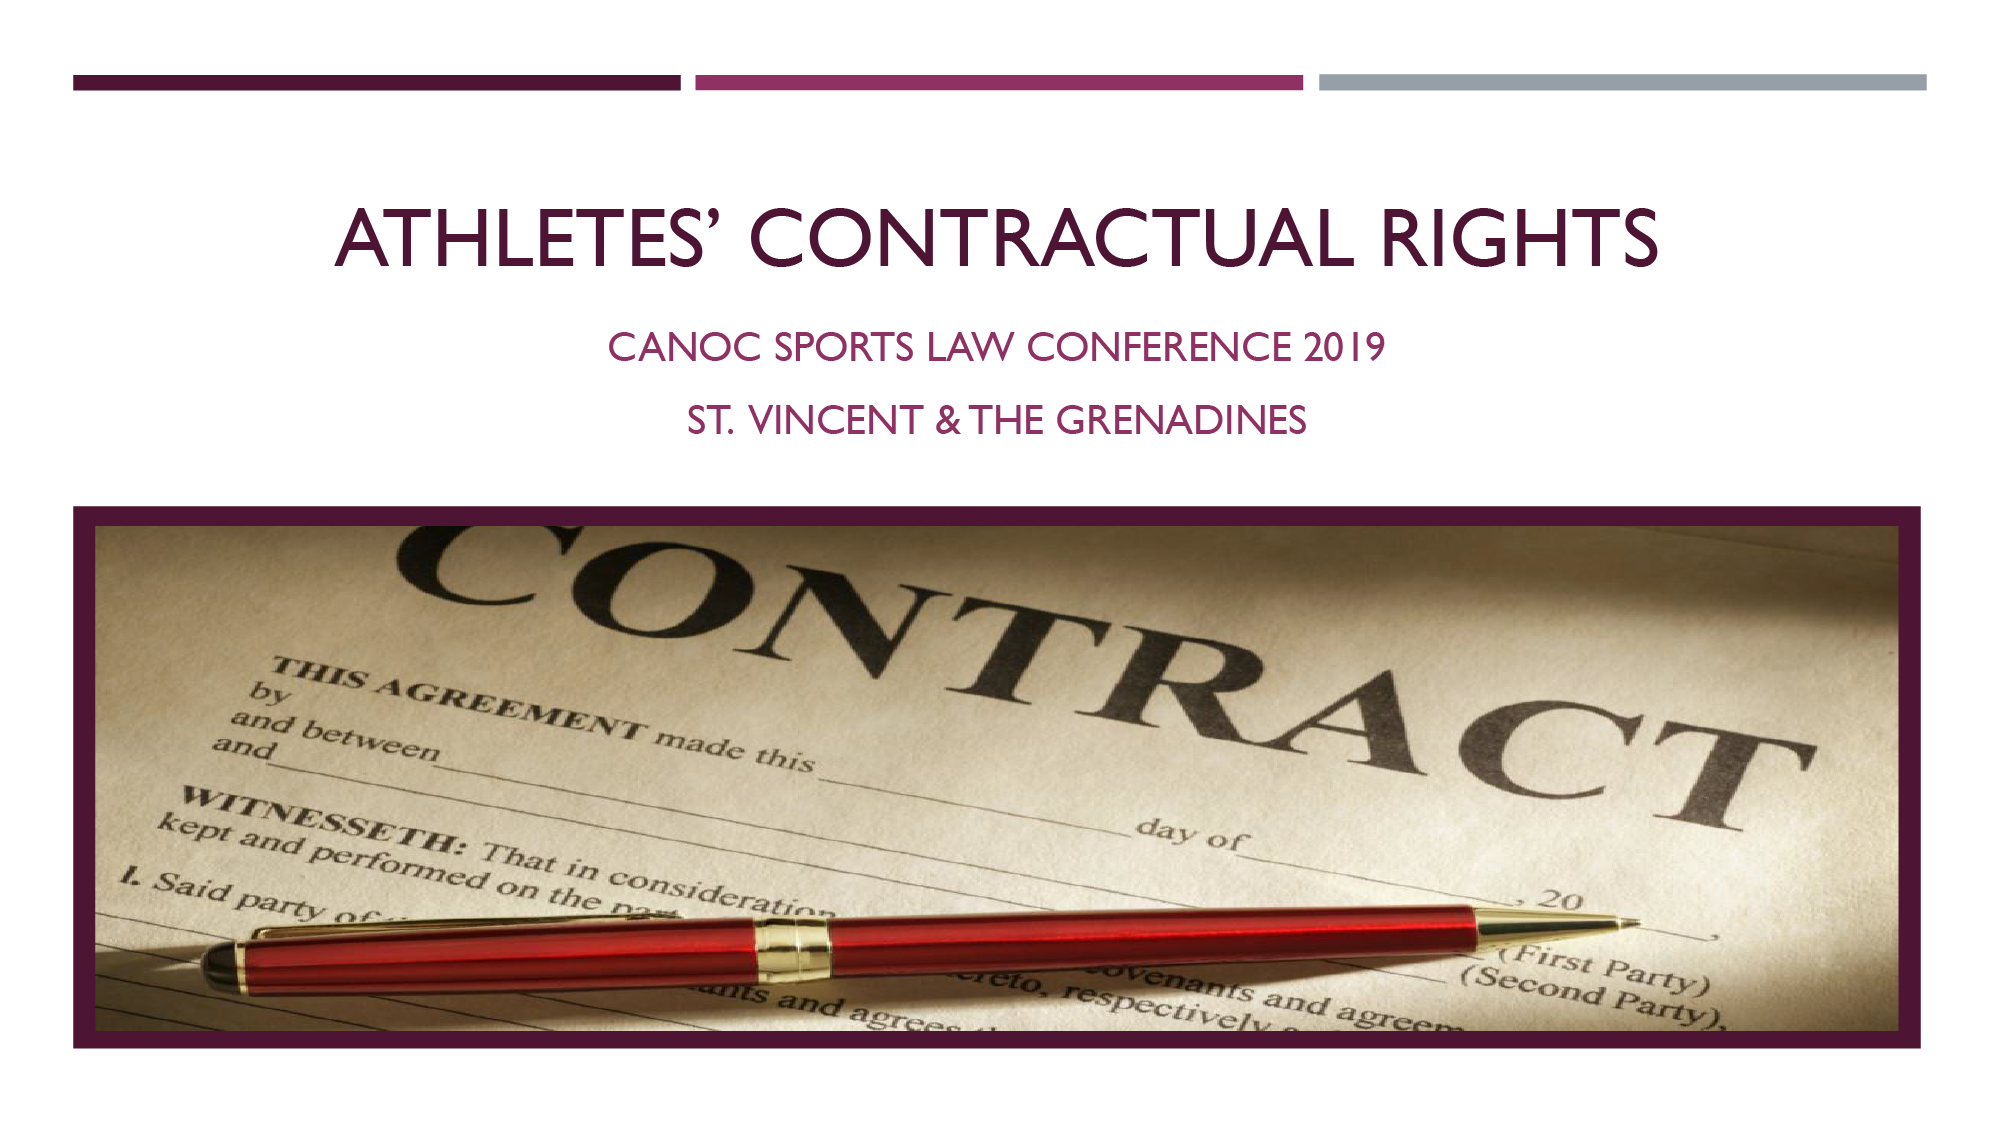 ATHLETES' CONTRACTUAL RIGHTS